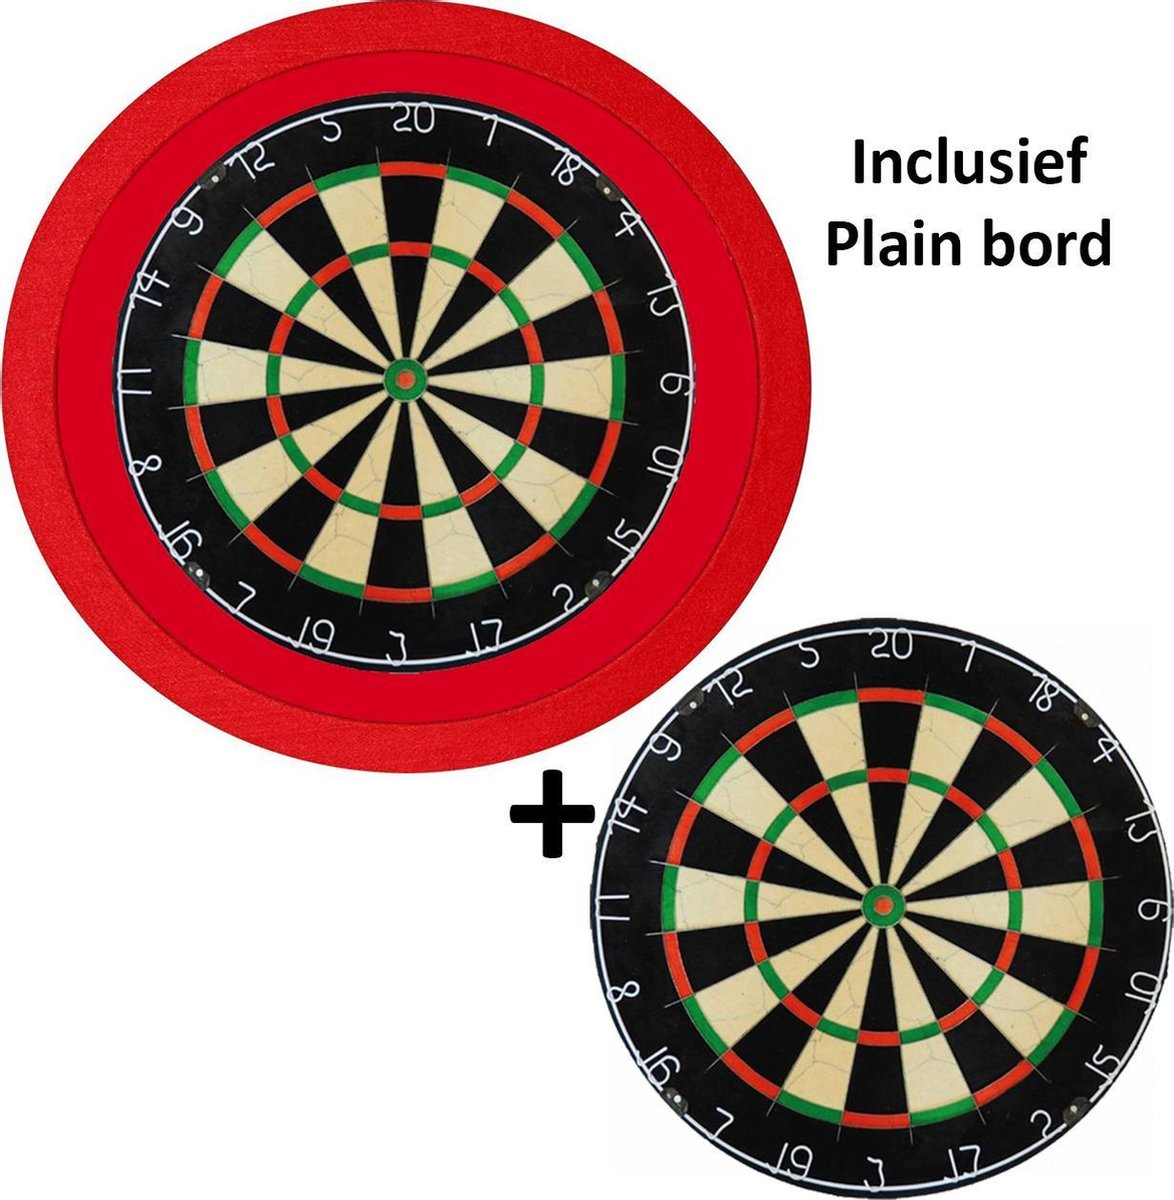 Dragon Darts - TCB X-Ray 3.0 Luxe - dartbord verlichting - surround - inclusief plain - dartbord - rood